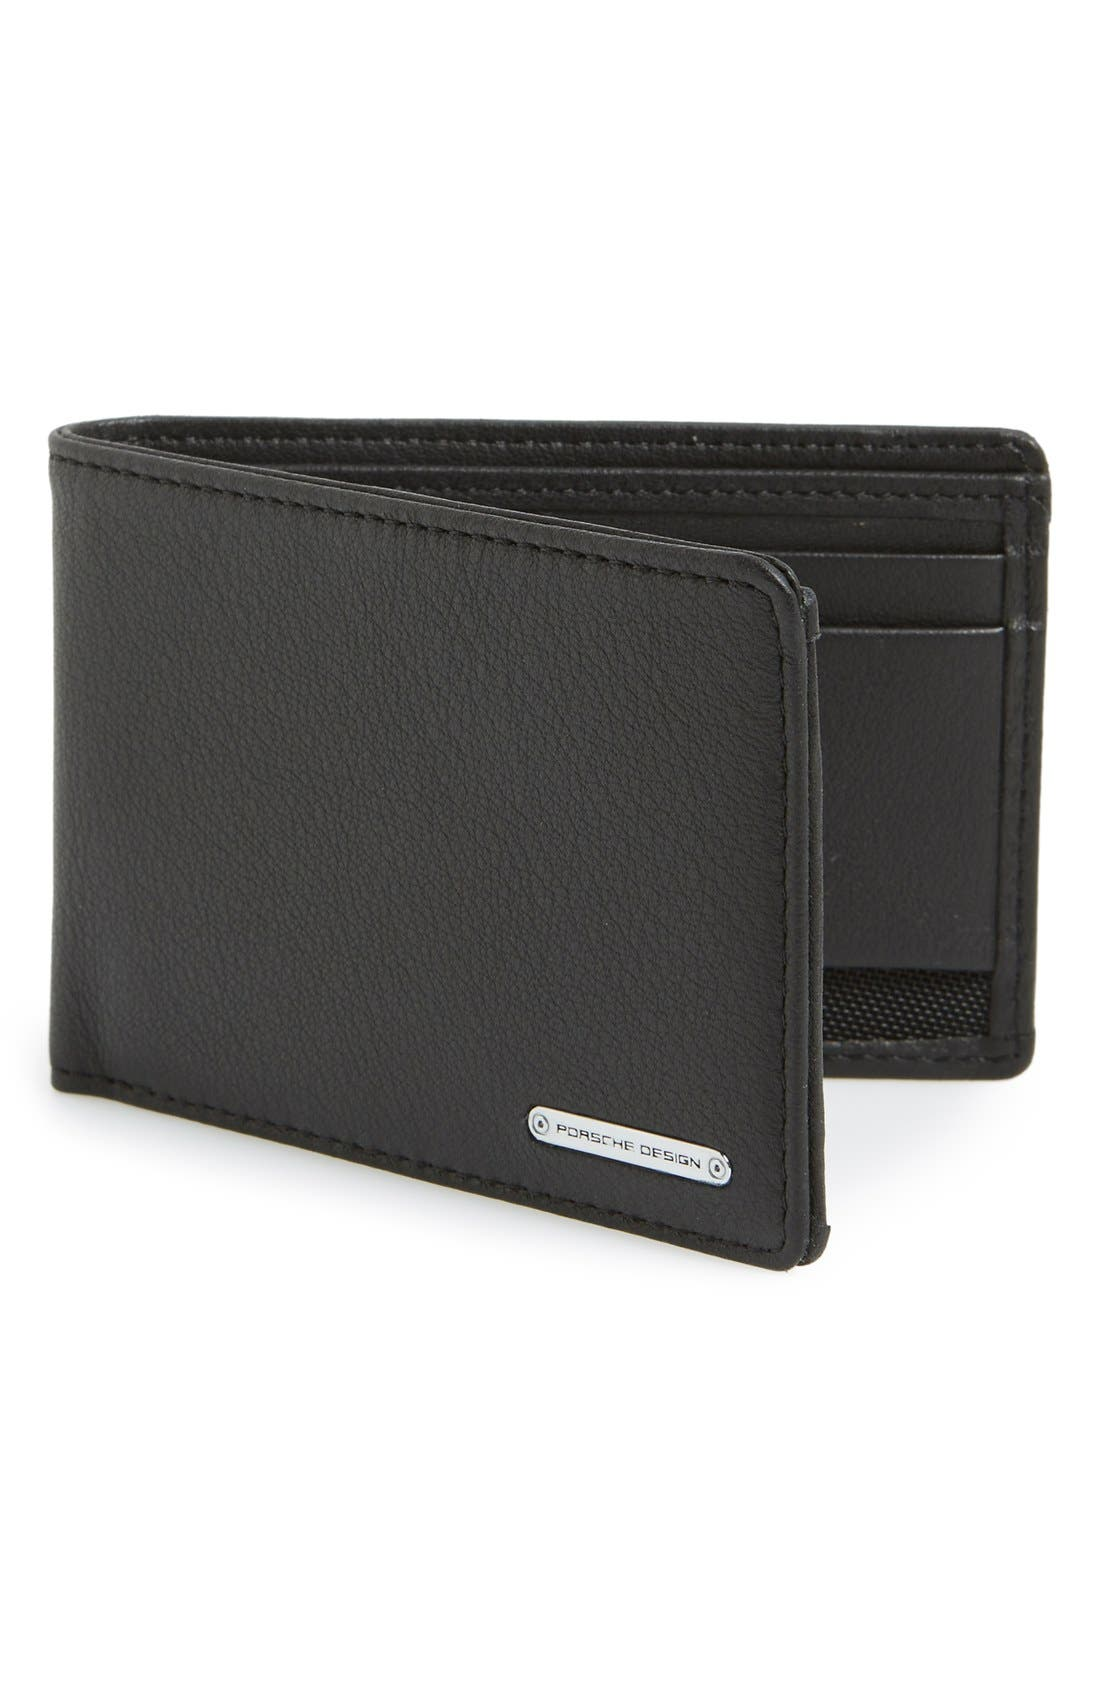 PORSCHE DESIGN 'CL2 2.0' Leather Bifold Wallet